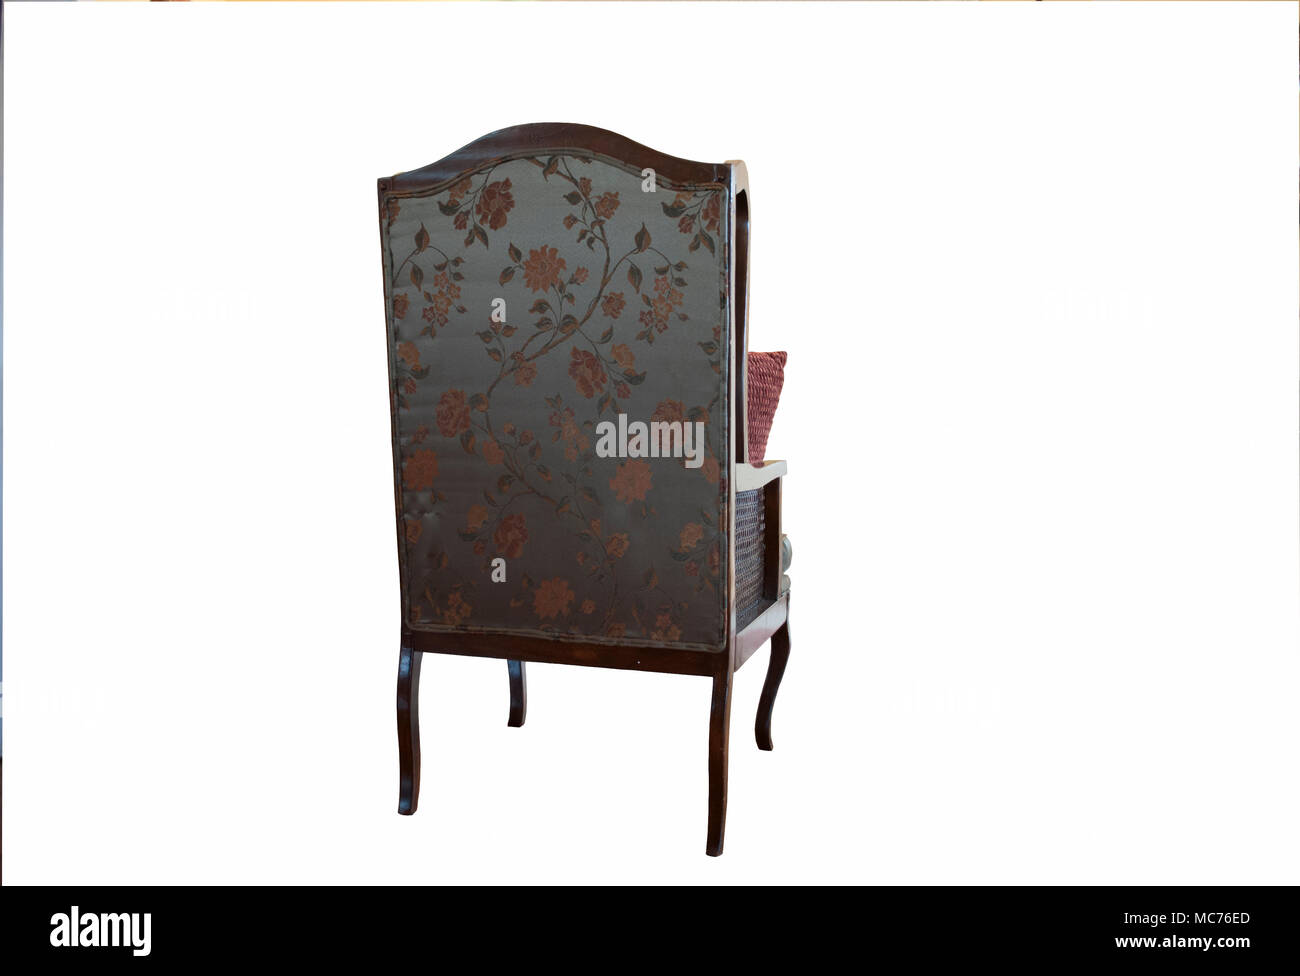 Retro Piece Of Furniture. Auction. Used Pieces Of Furniture, Victorian,  French, Jacobean, Queen, Royal, Pennsylvania Dutch Sheraton